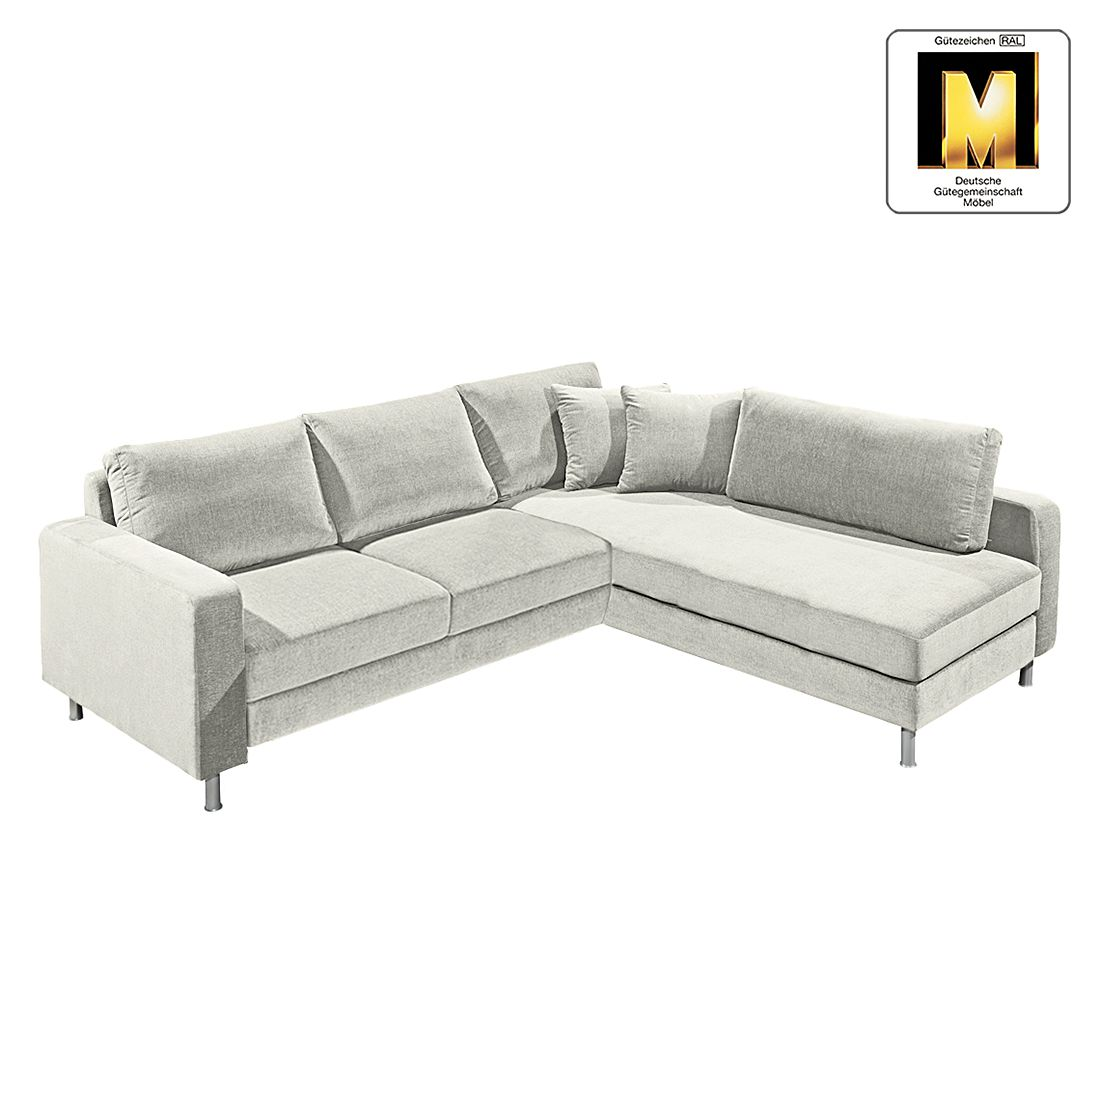 ecksofa casual line vi velours hellgrau ottomane davorstehend rechts claas claasen online. Black Bedroom Furniture Sets. Home Design Ideas